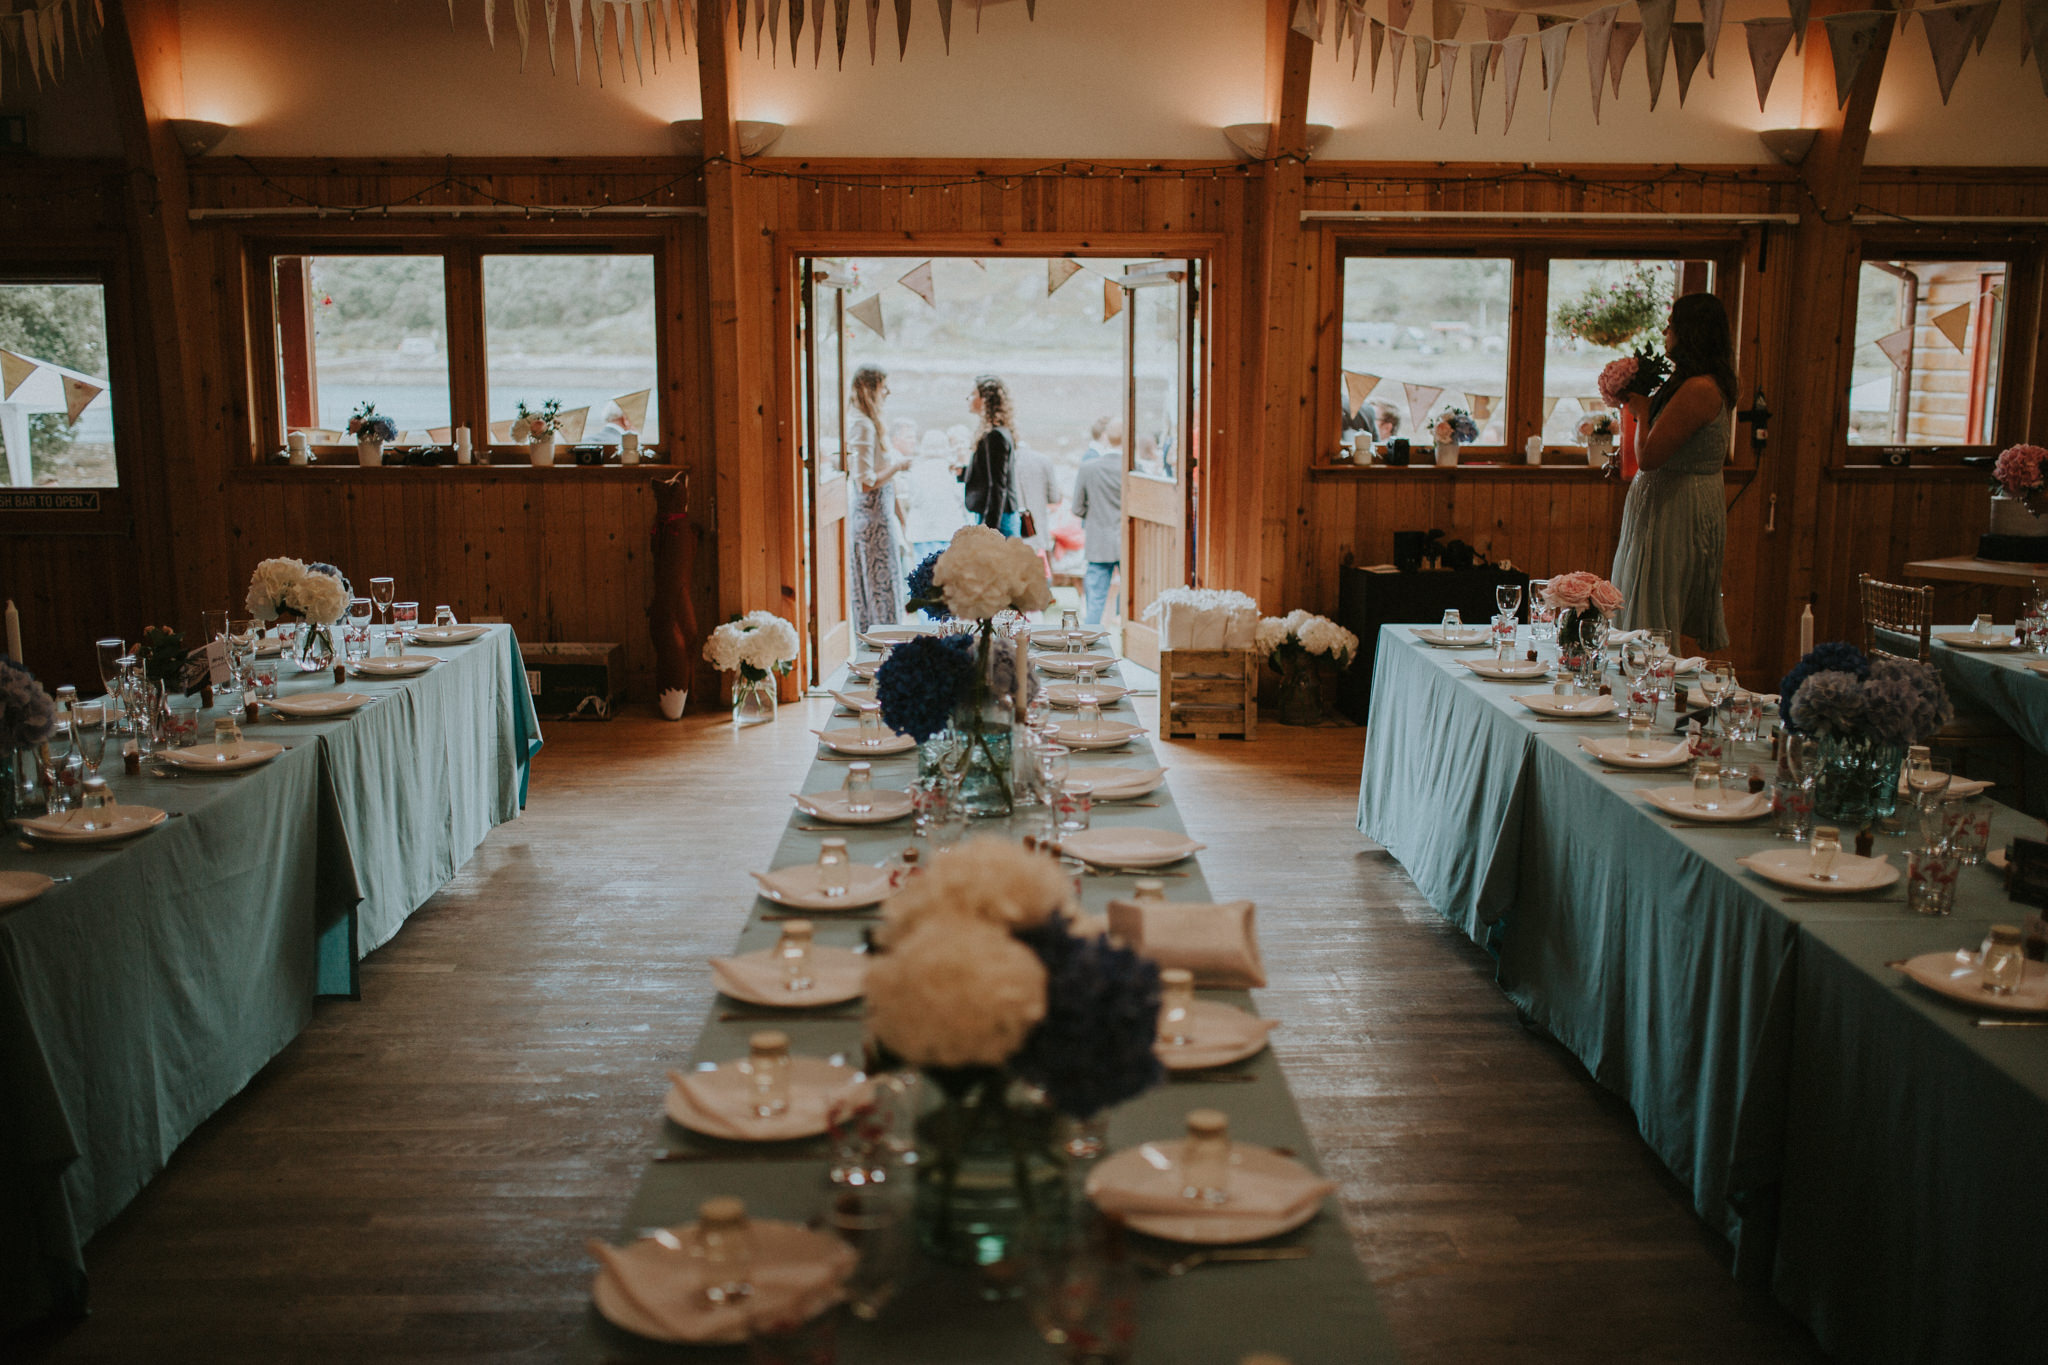 The wedding table is decorated with blue flowers and mint green table cloths.